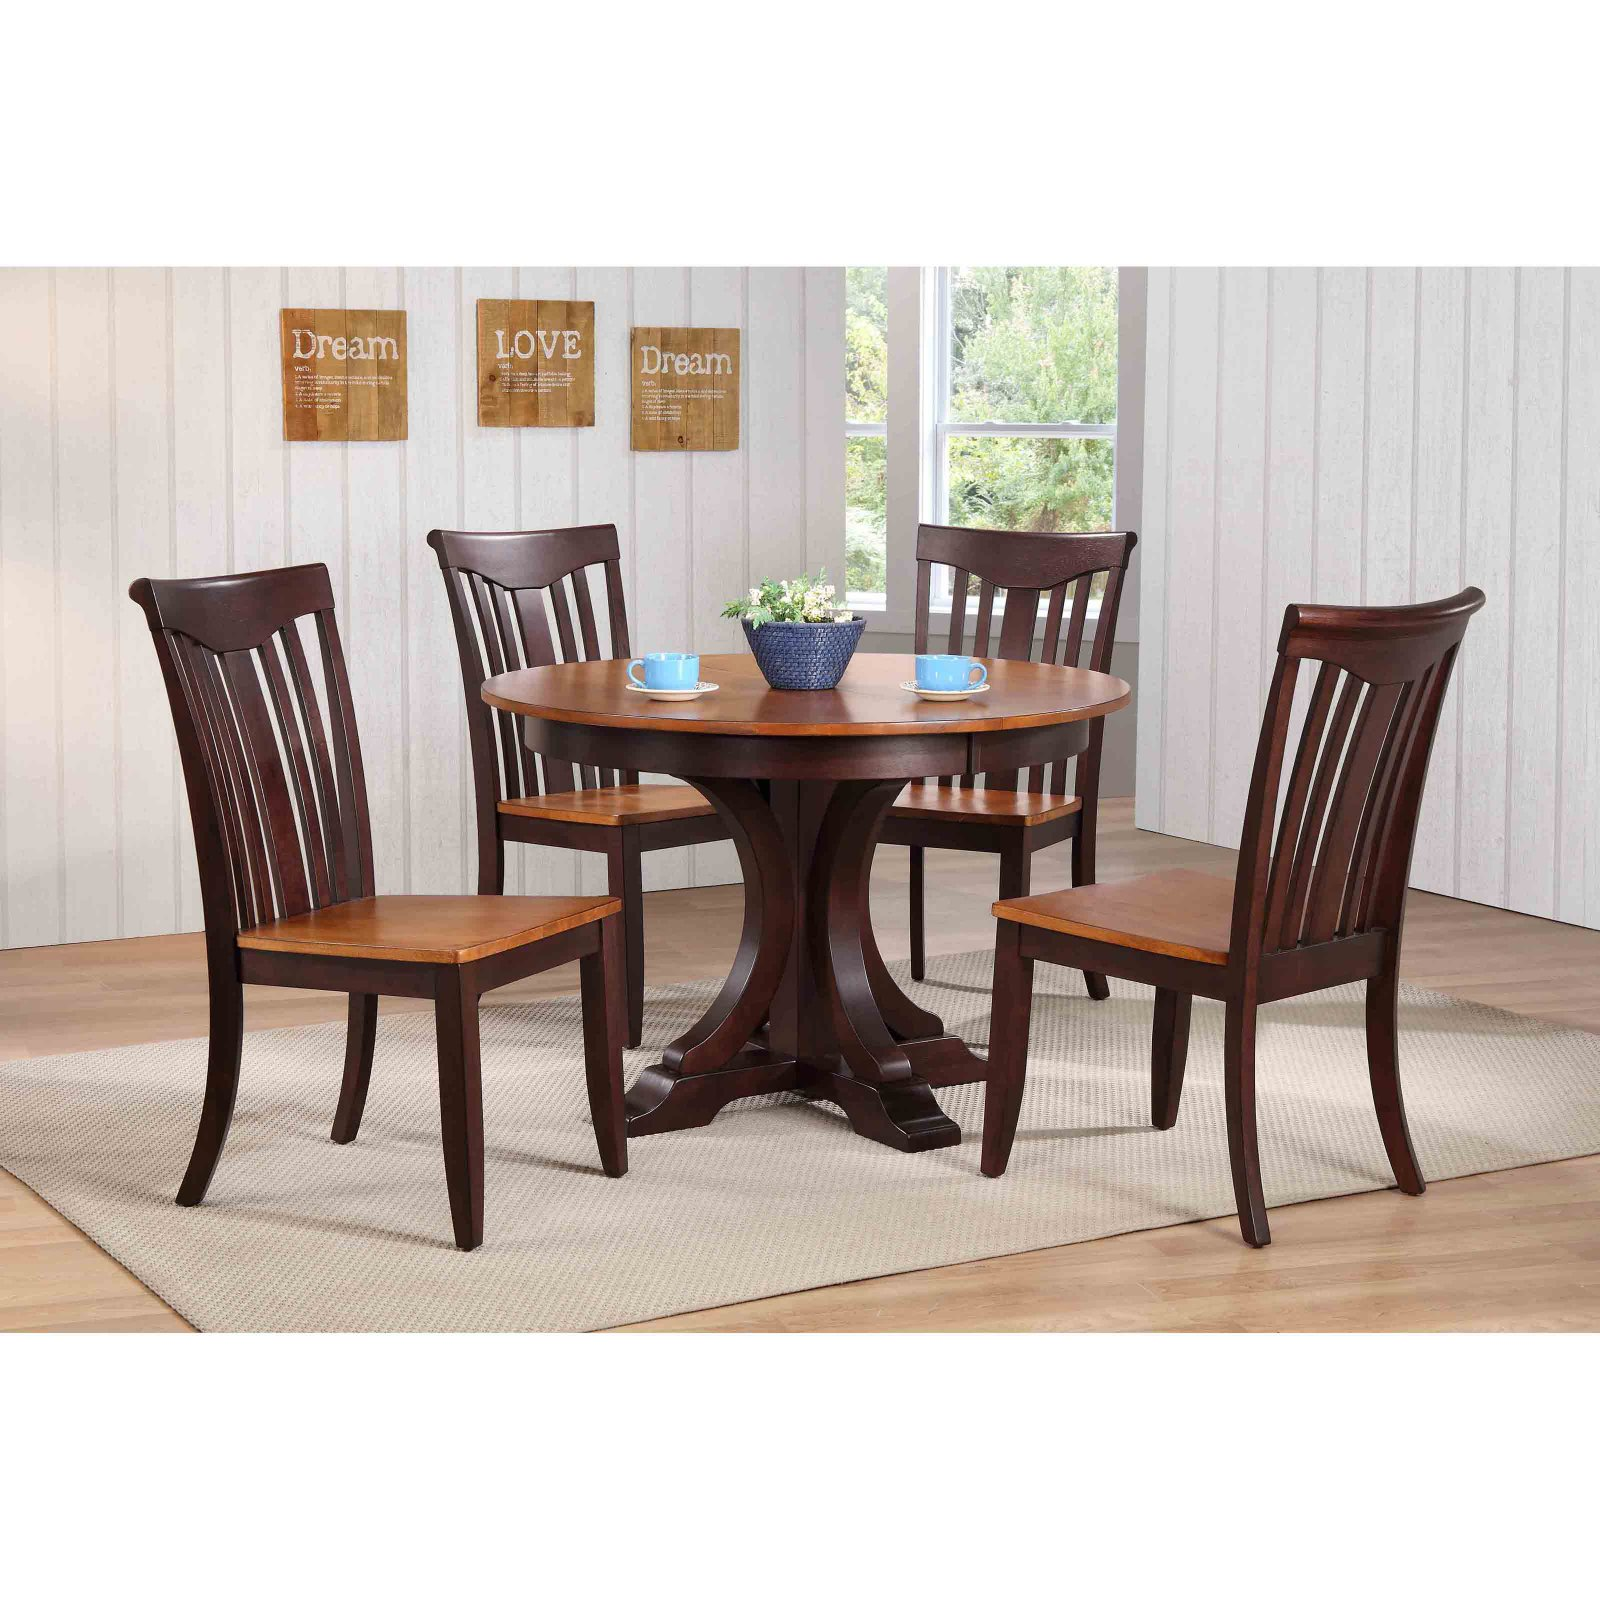 Iconic Furniture Deco 45 in. Slat Back 5 Piece Round Dining Table Set